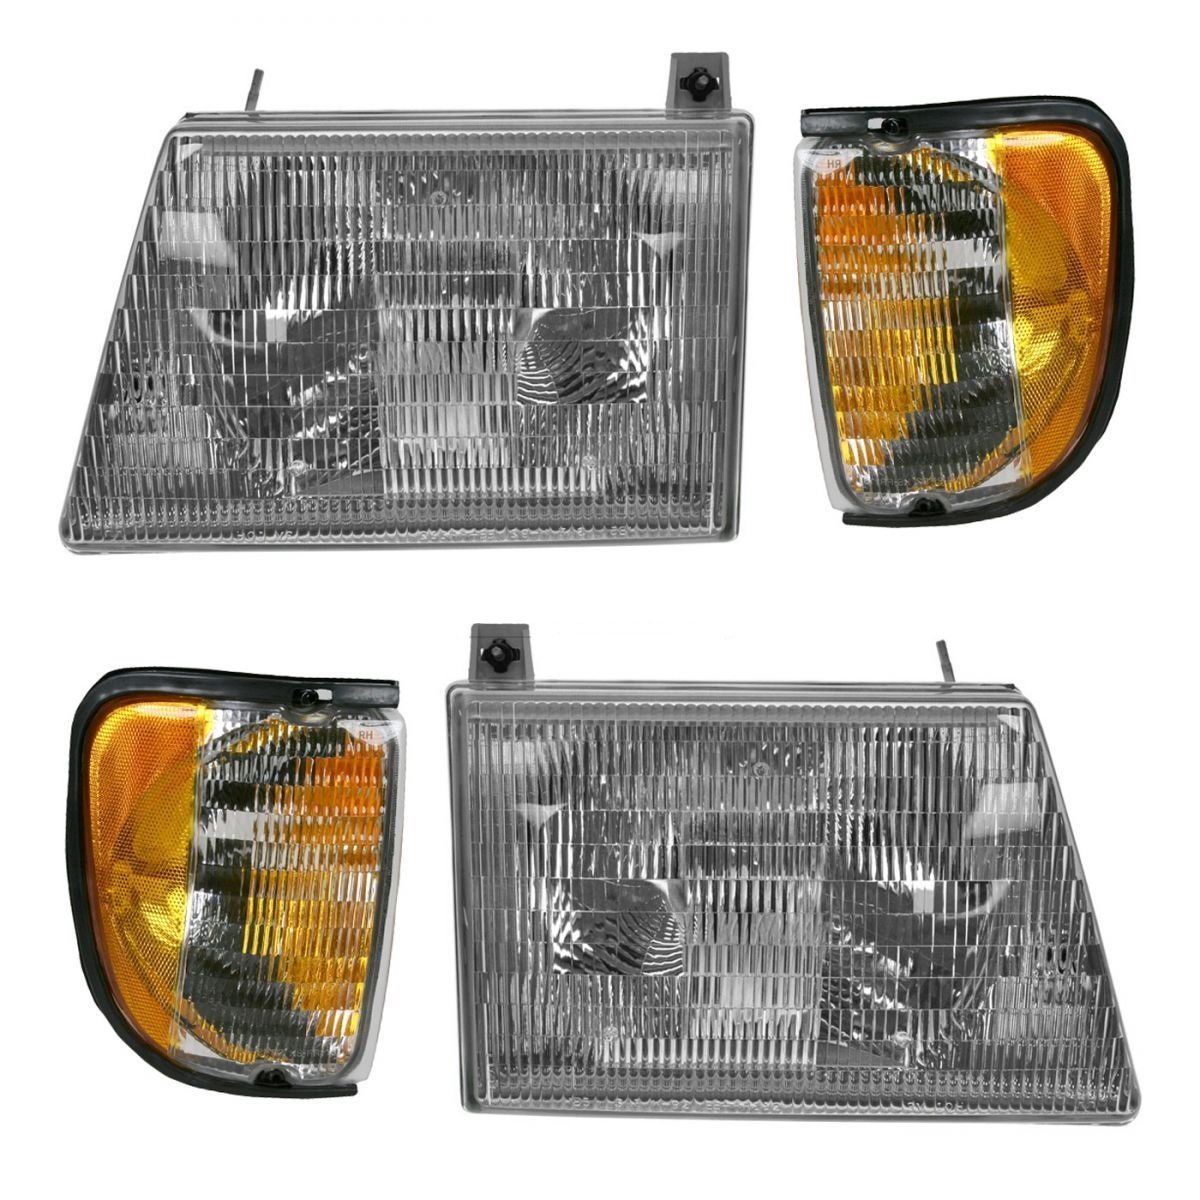 Fleetwood Pace Arrow 1997-2000 RV Motorhome 4 Piece Set Left /& Right Replacement Front Headlights /& Signal Lights